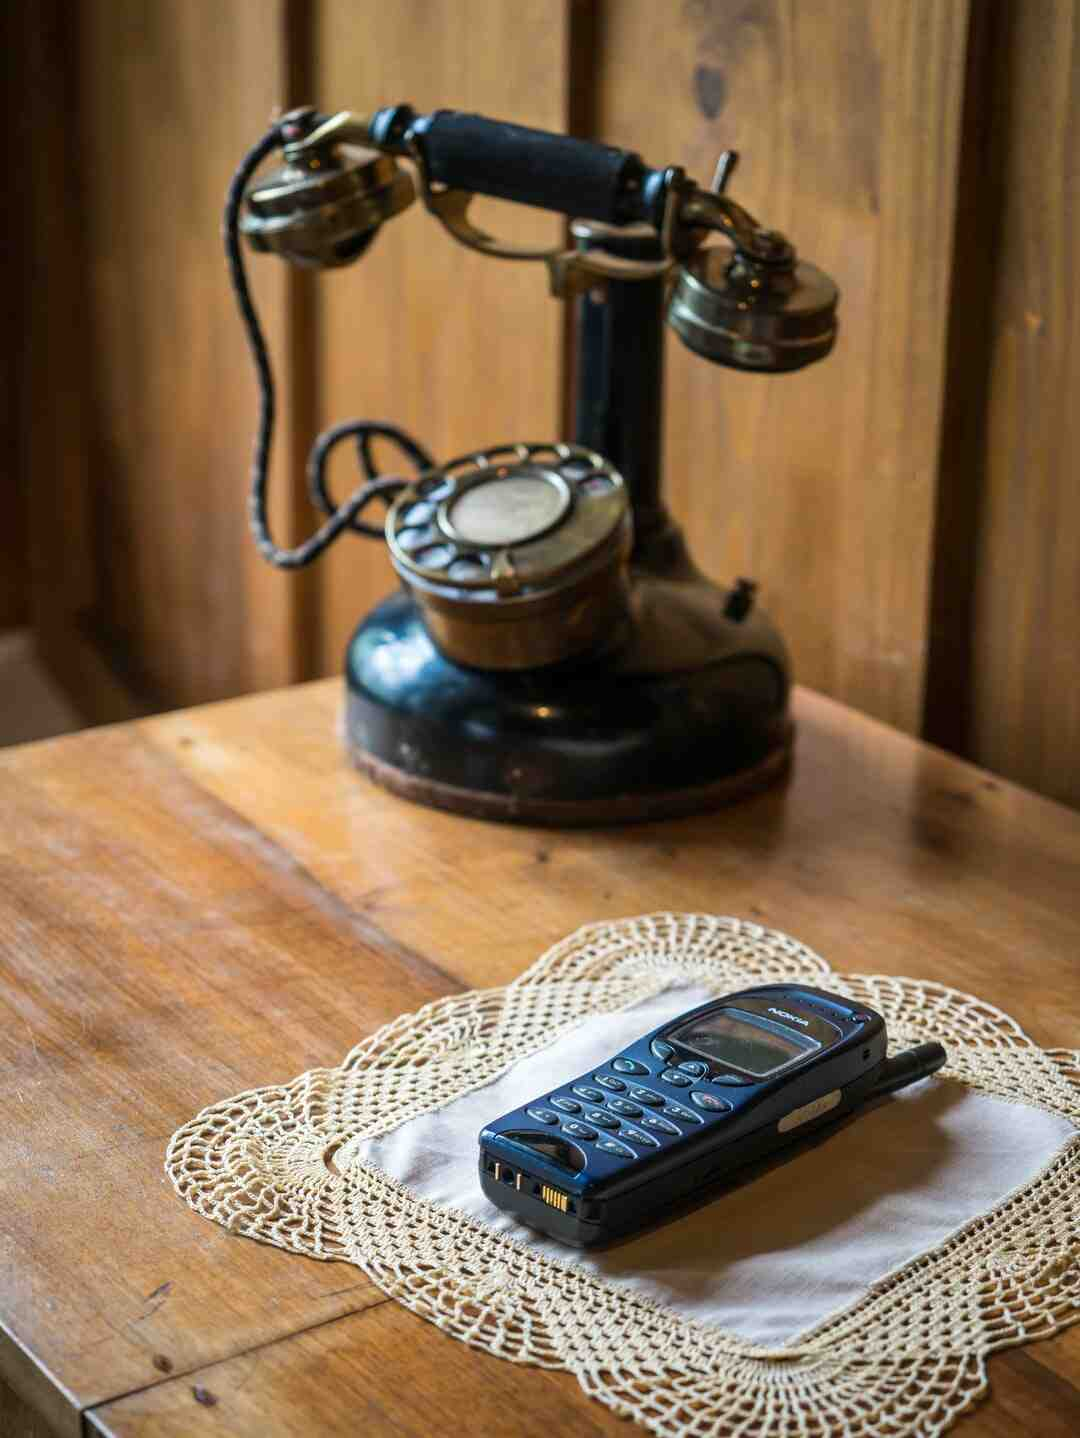 What happens if you accidentally text a landline?